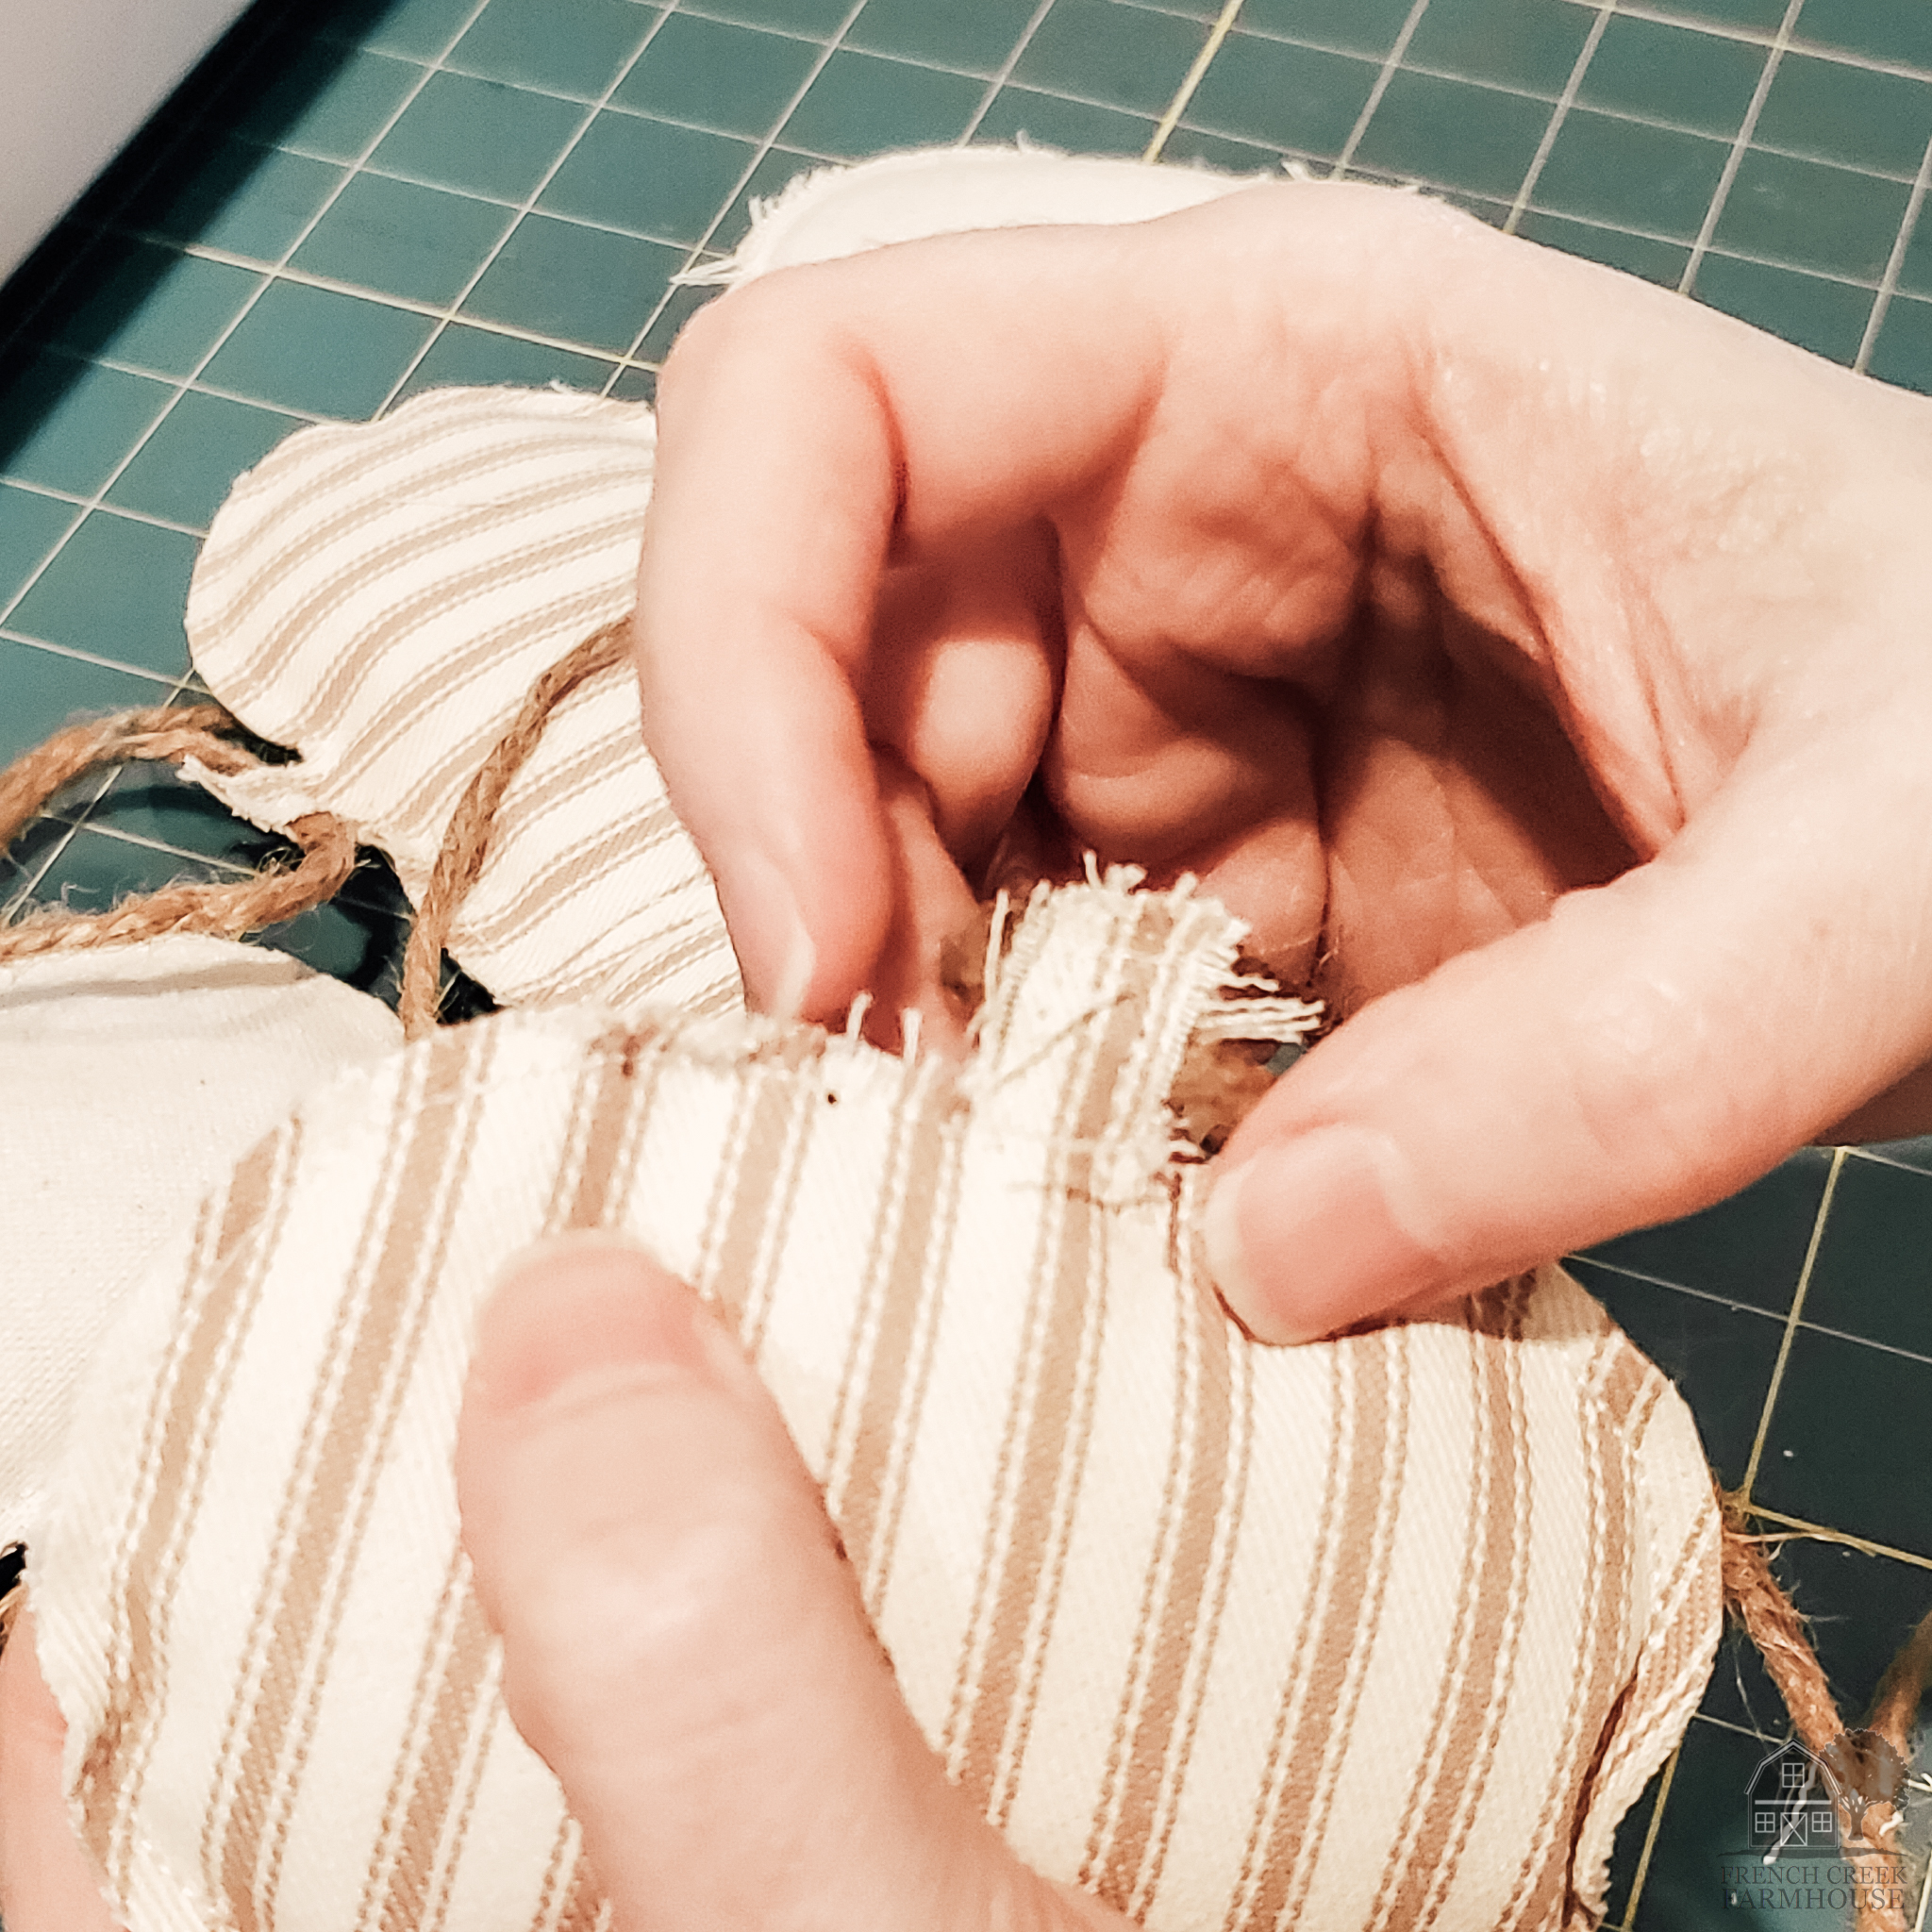 Fraying the edges of fabric